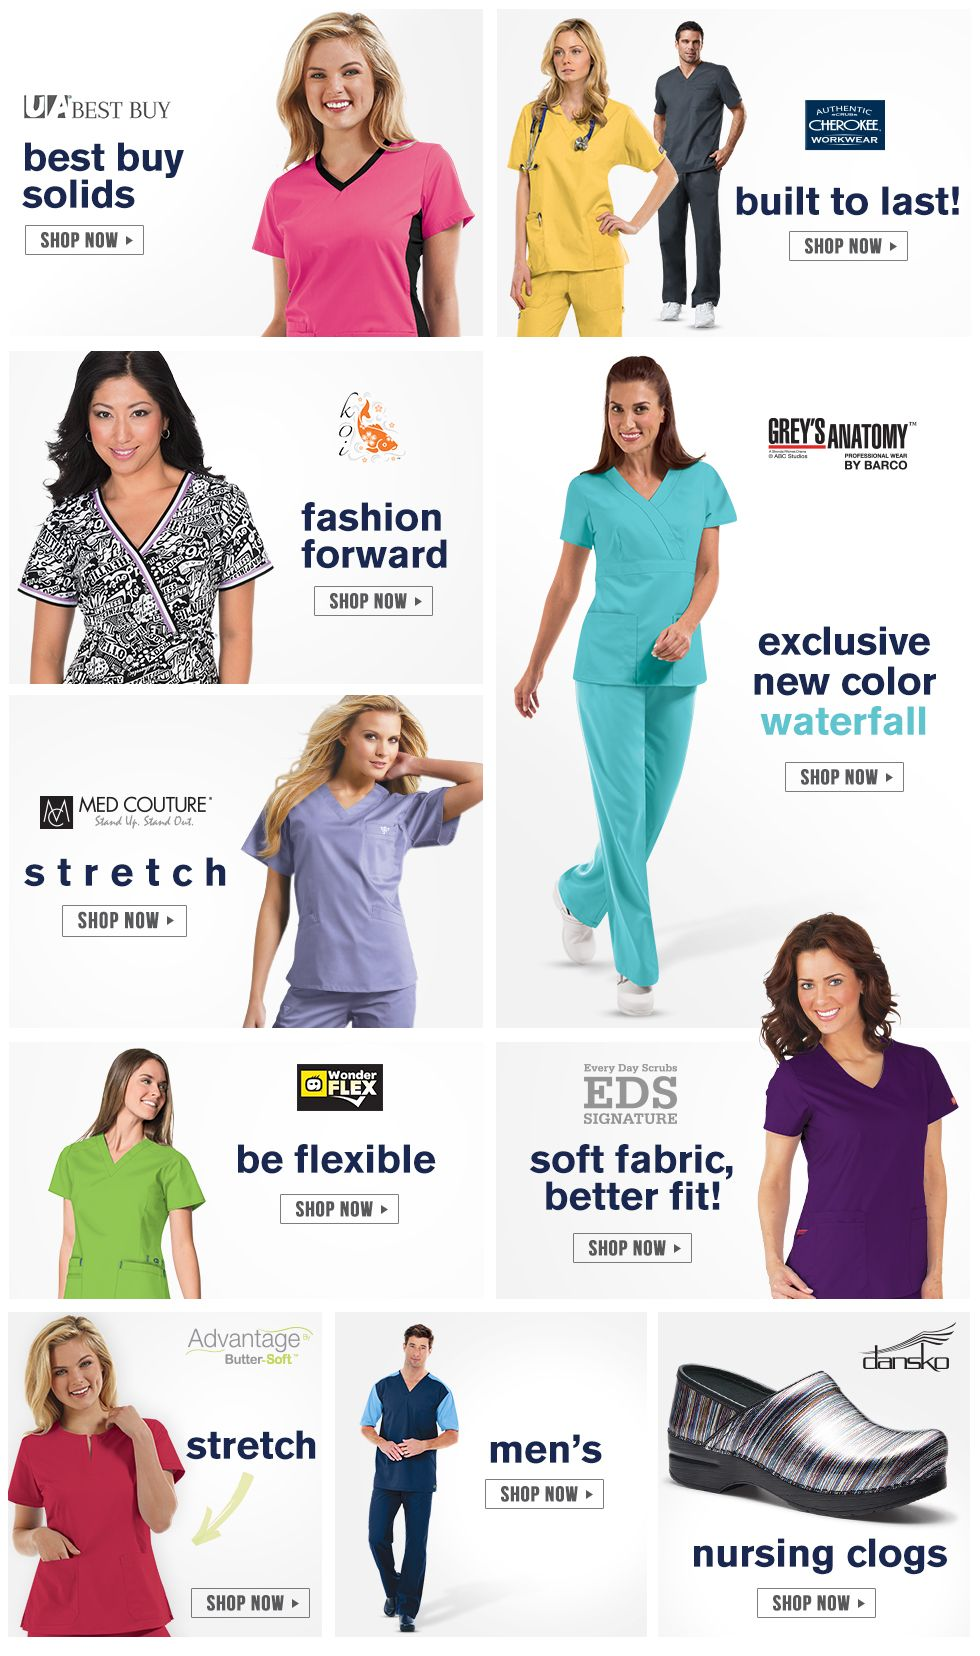 dfc5cbfbee9 Scrubs, Nursing Uniforms, and Medical Scrubs at Uniform Advantage ...